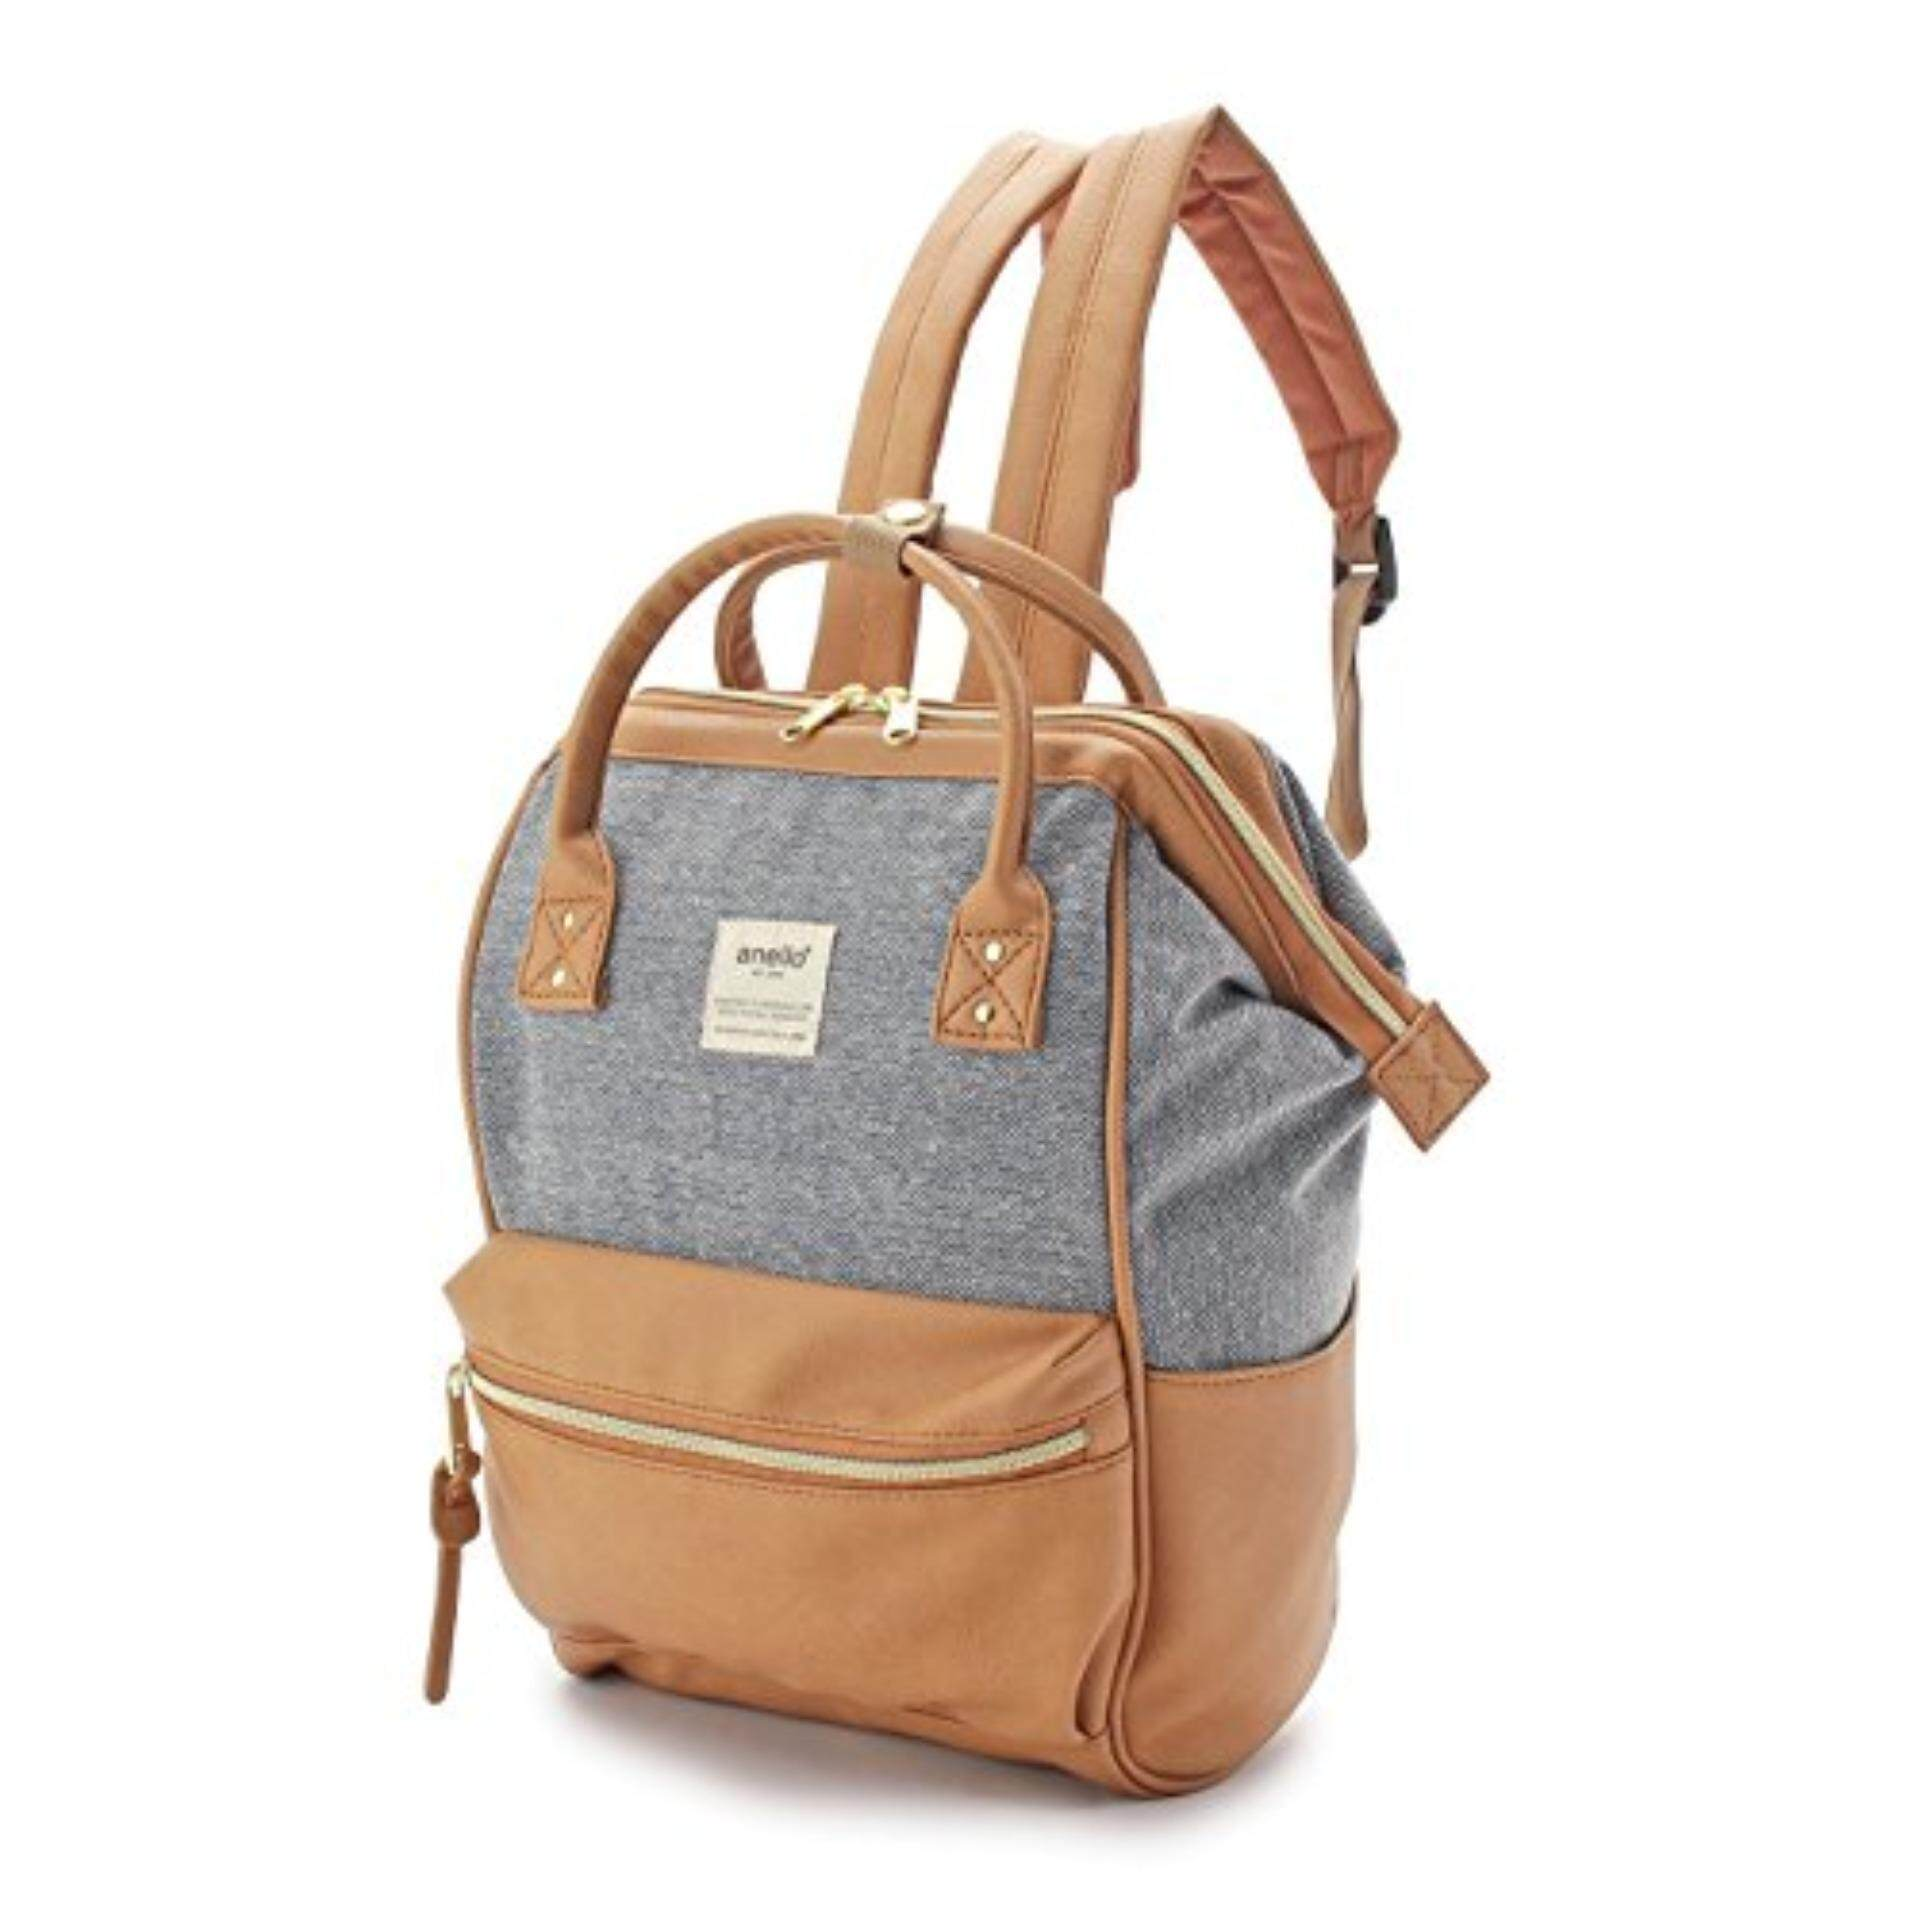 สอนใช้งาน  บึงกาฬ กระเป๋า Anello x The Emporium Canvas/PU Mini Camel beige (Mini Size) - Japan Imported 100%